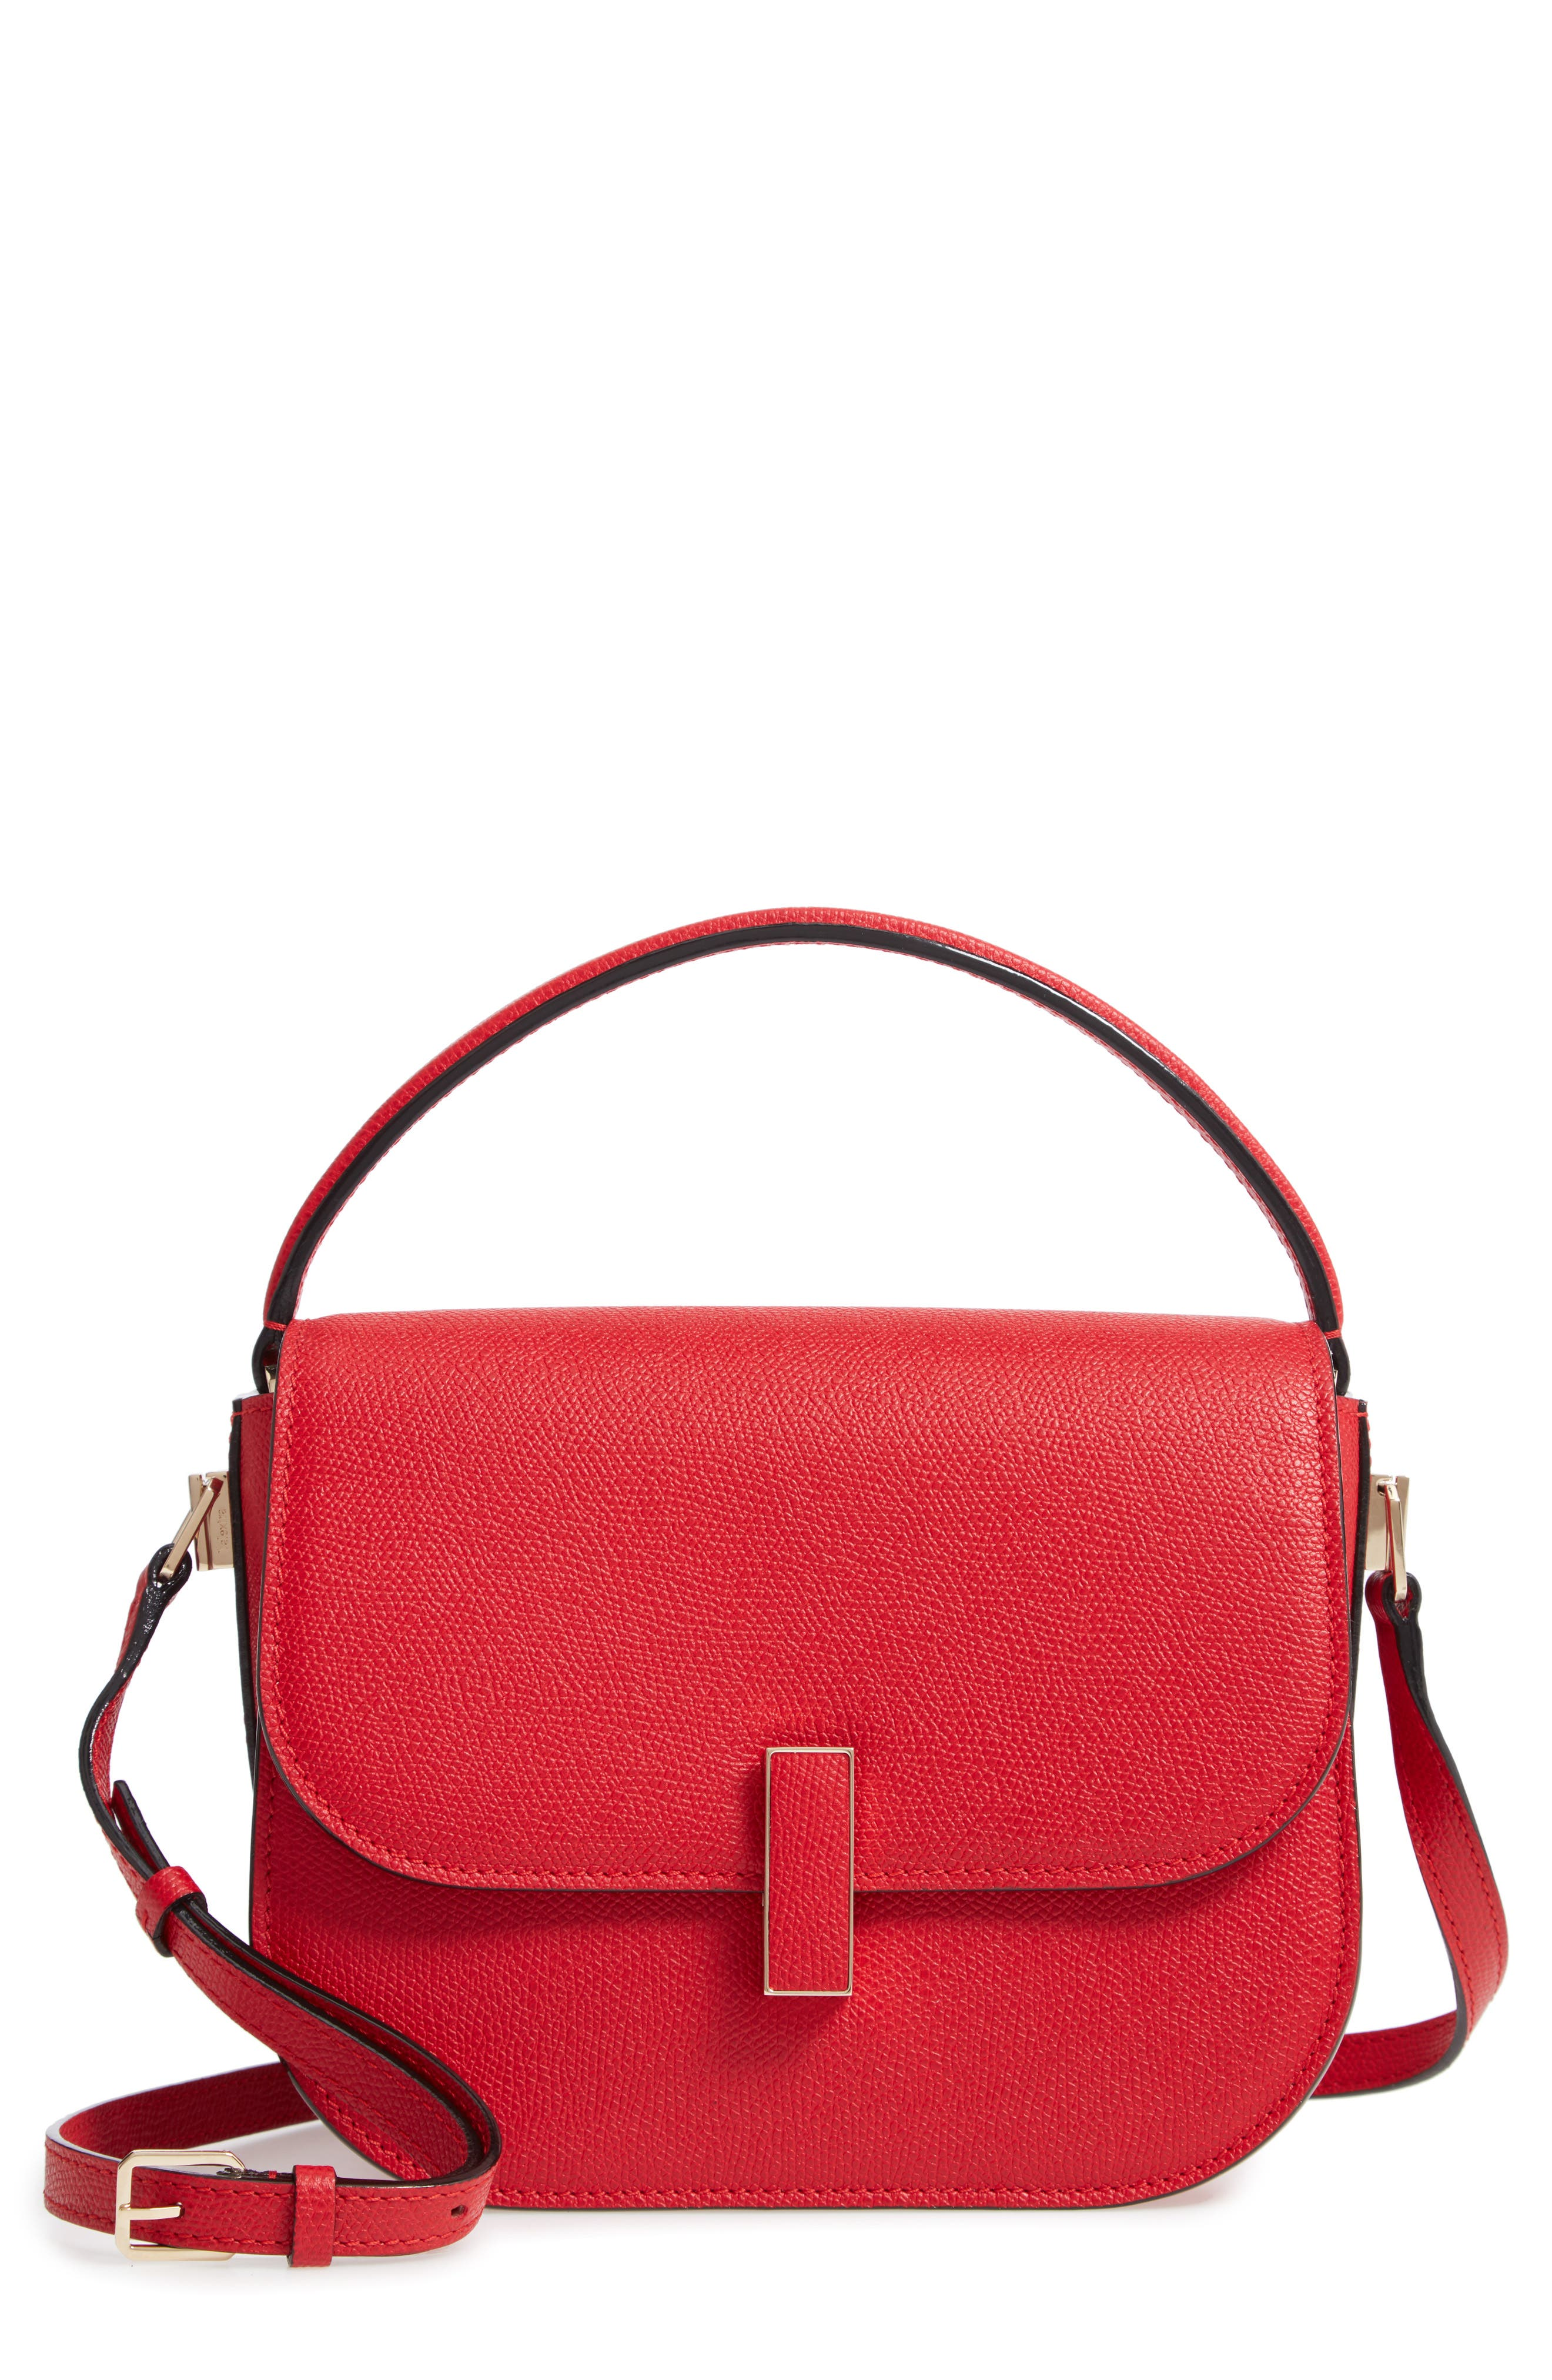 Valextra Iside Leather Top Handle Bag | Nordstrom